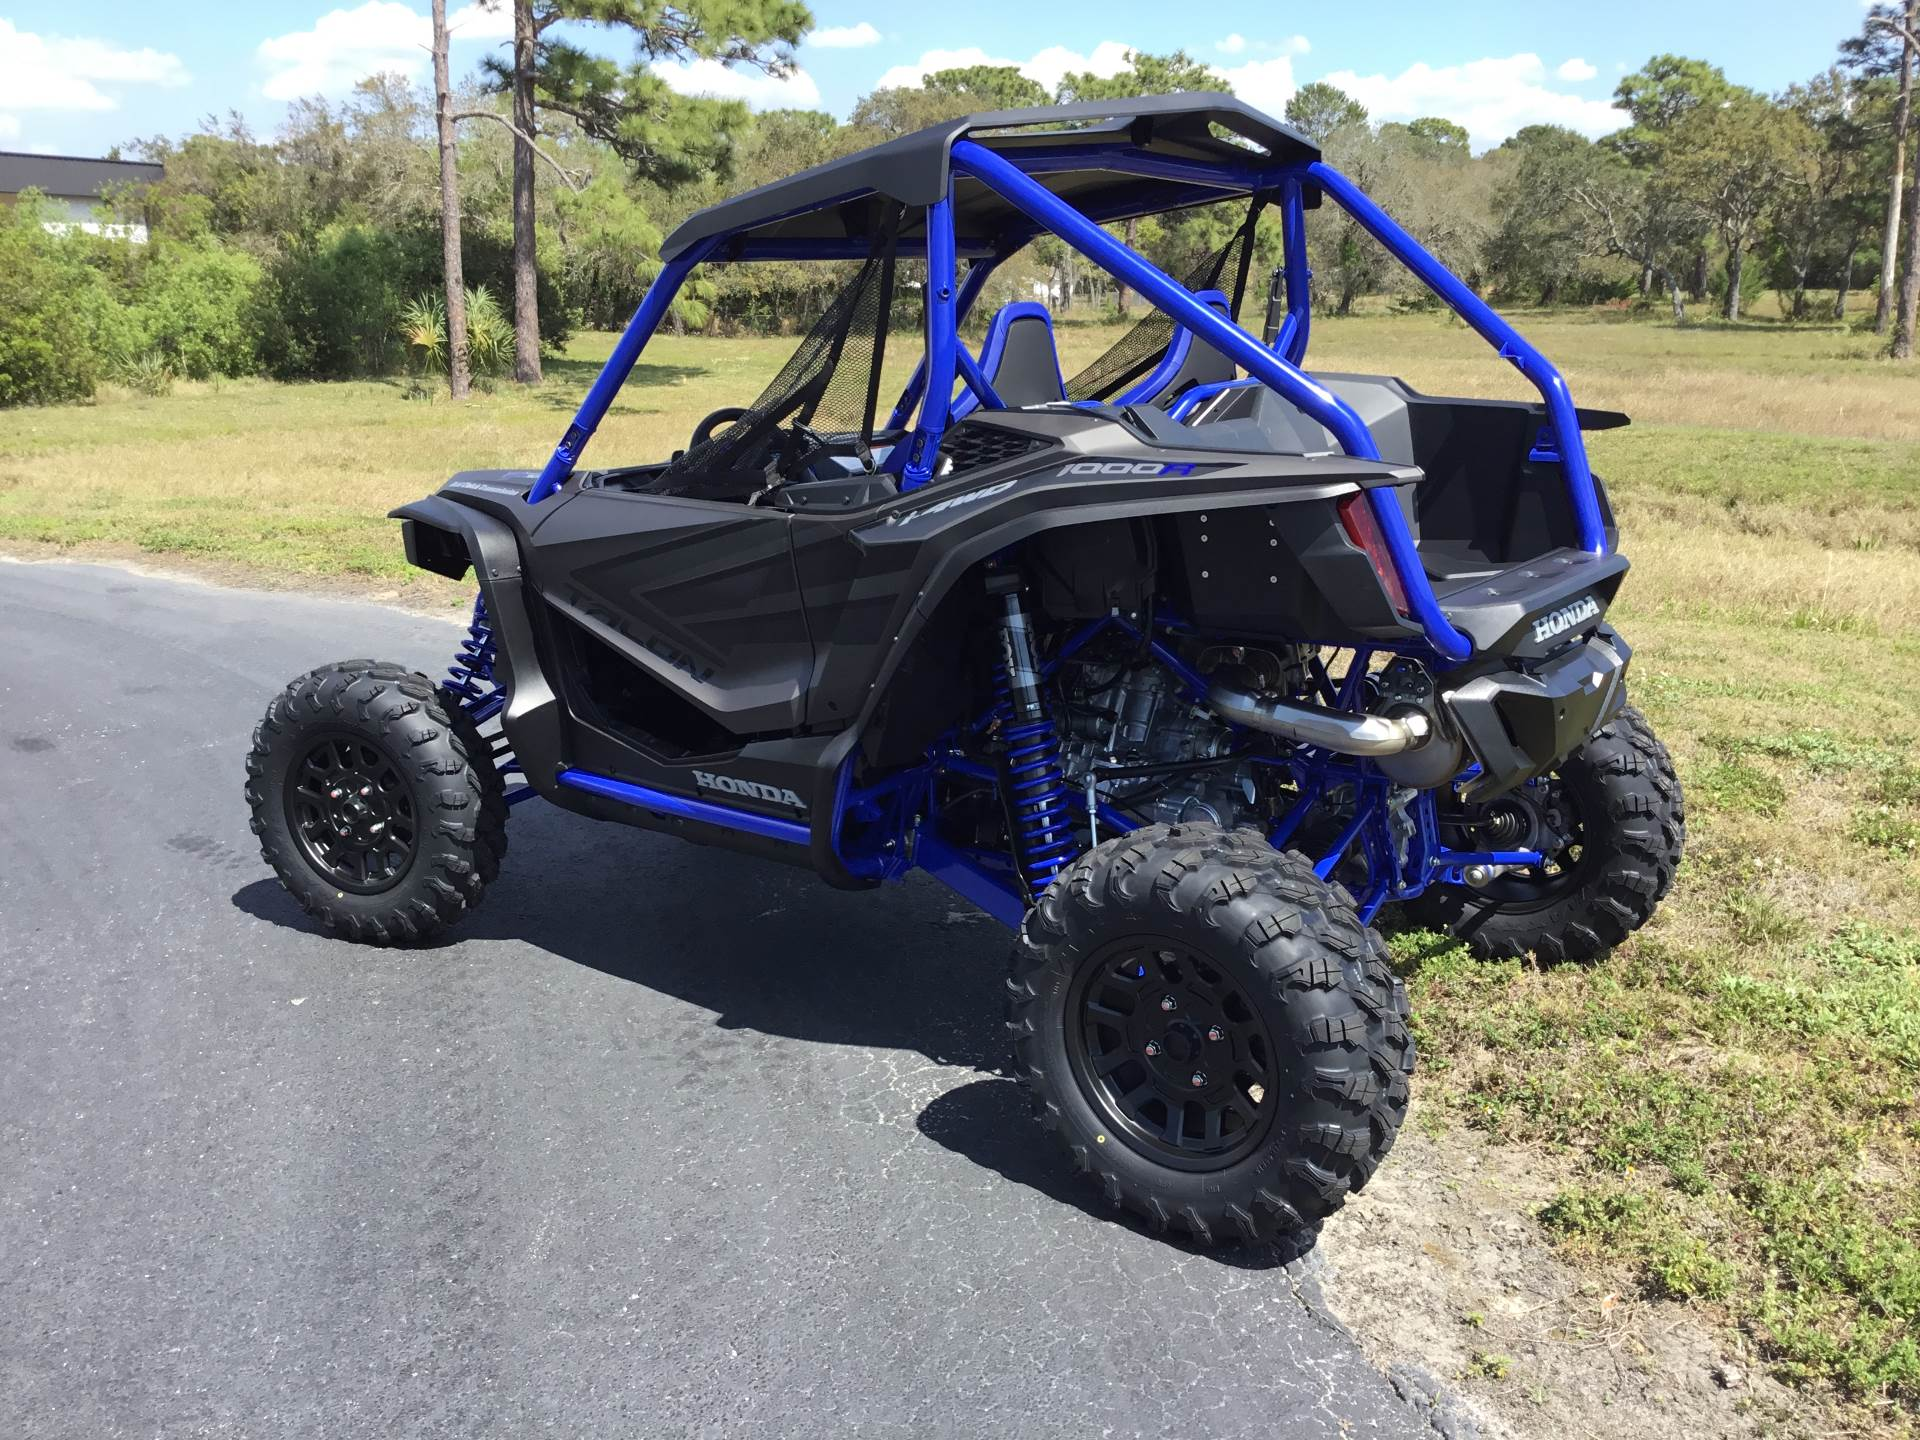 2021 Honda Talon 1000R FOX Live Valve in Hudson, Florida - Photo 4